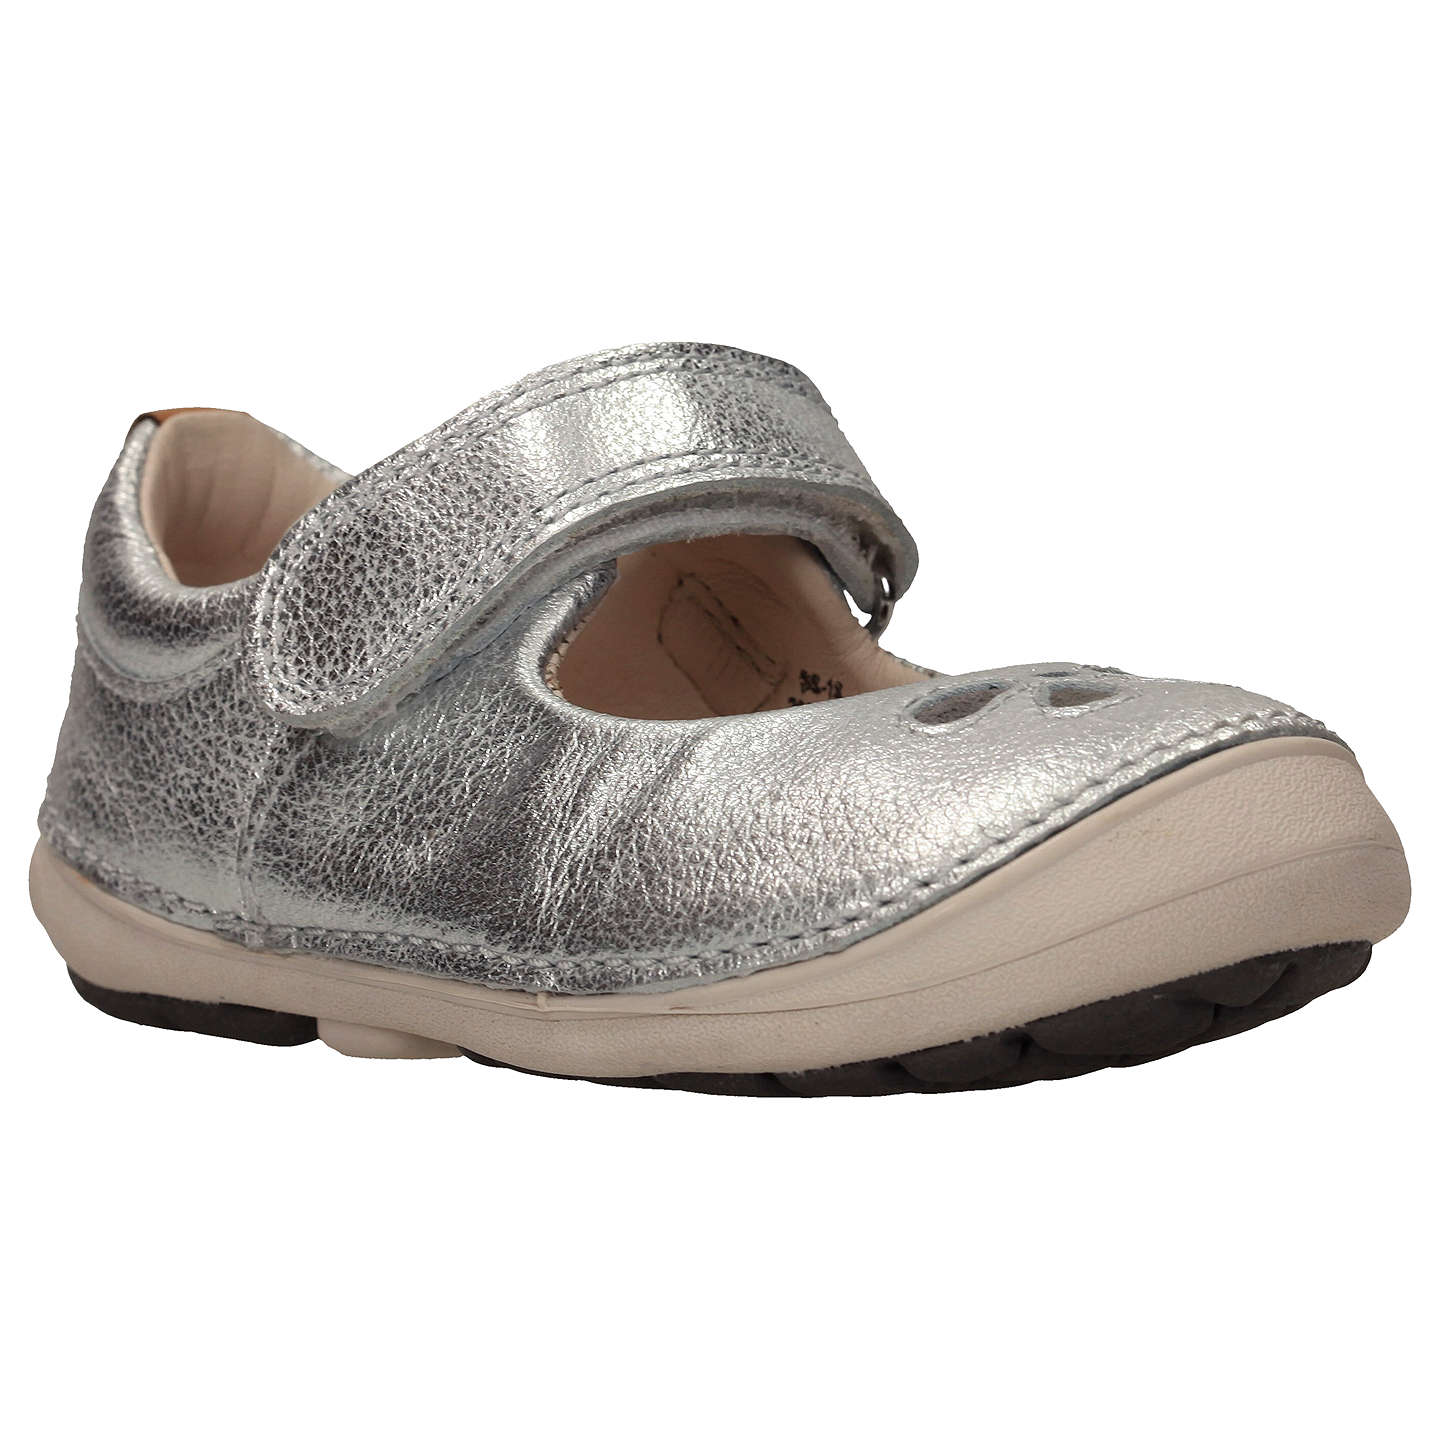 Clarks Children s Softly Eden First Shoes Silver at John Lewis